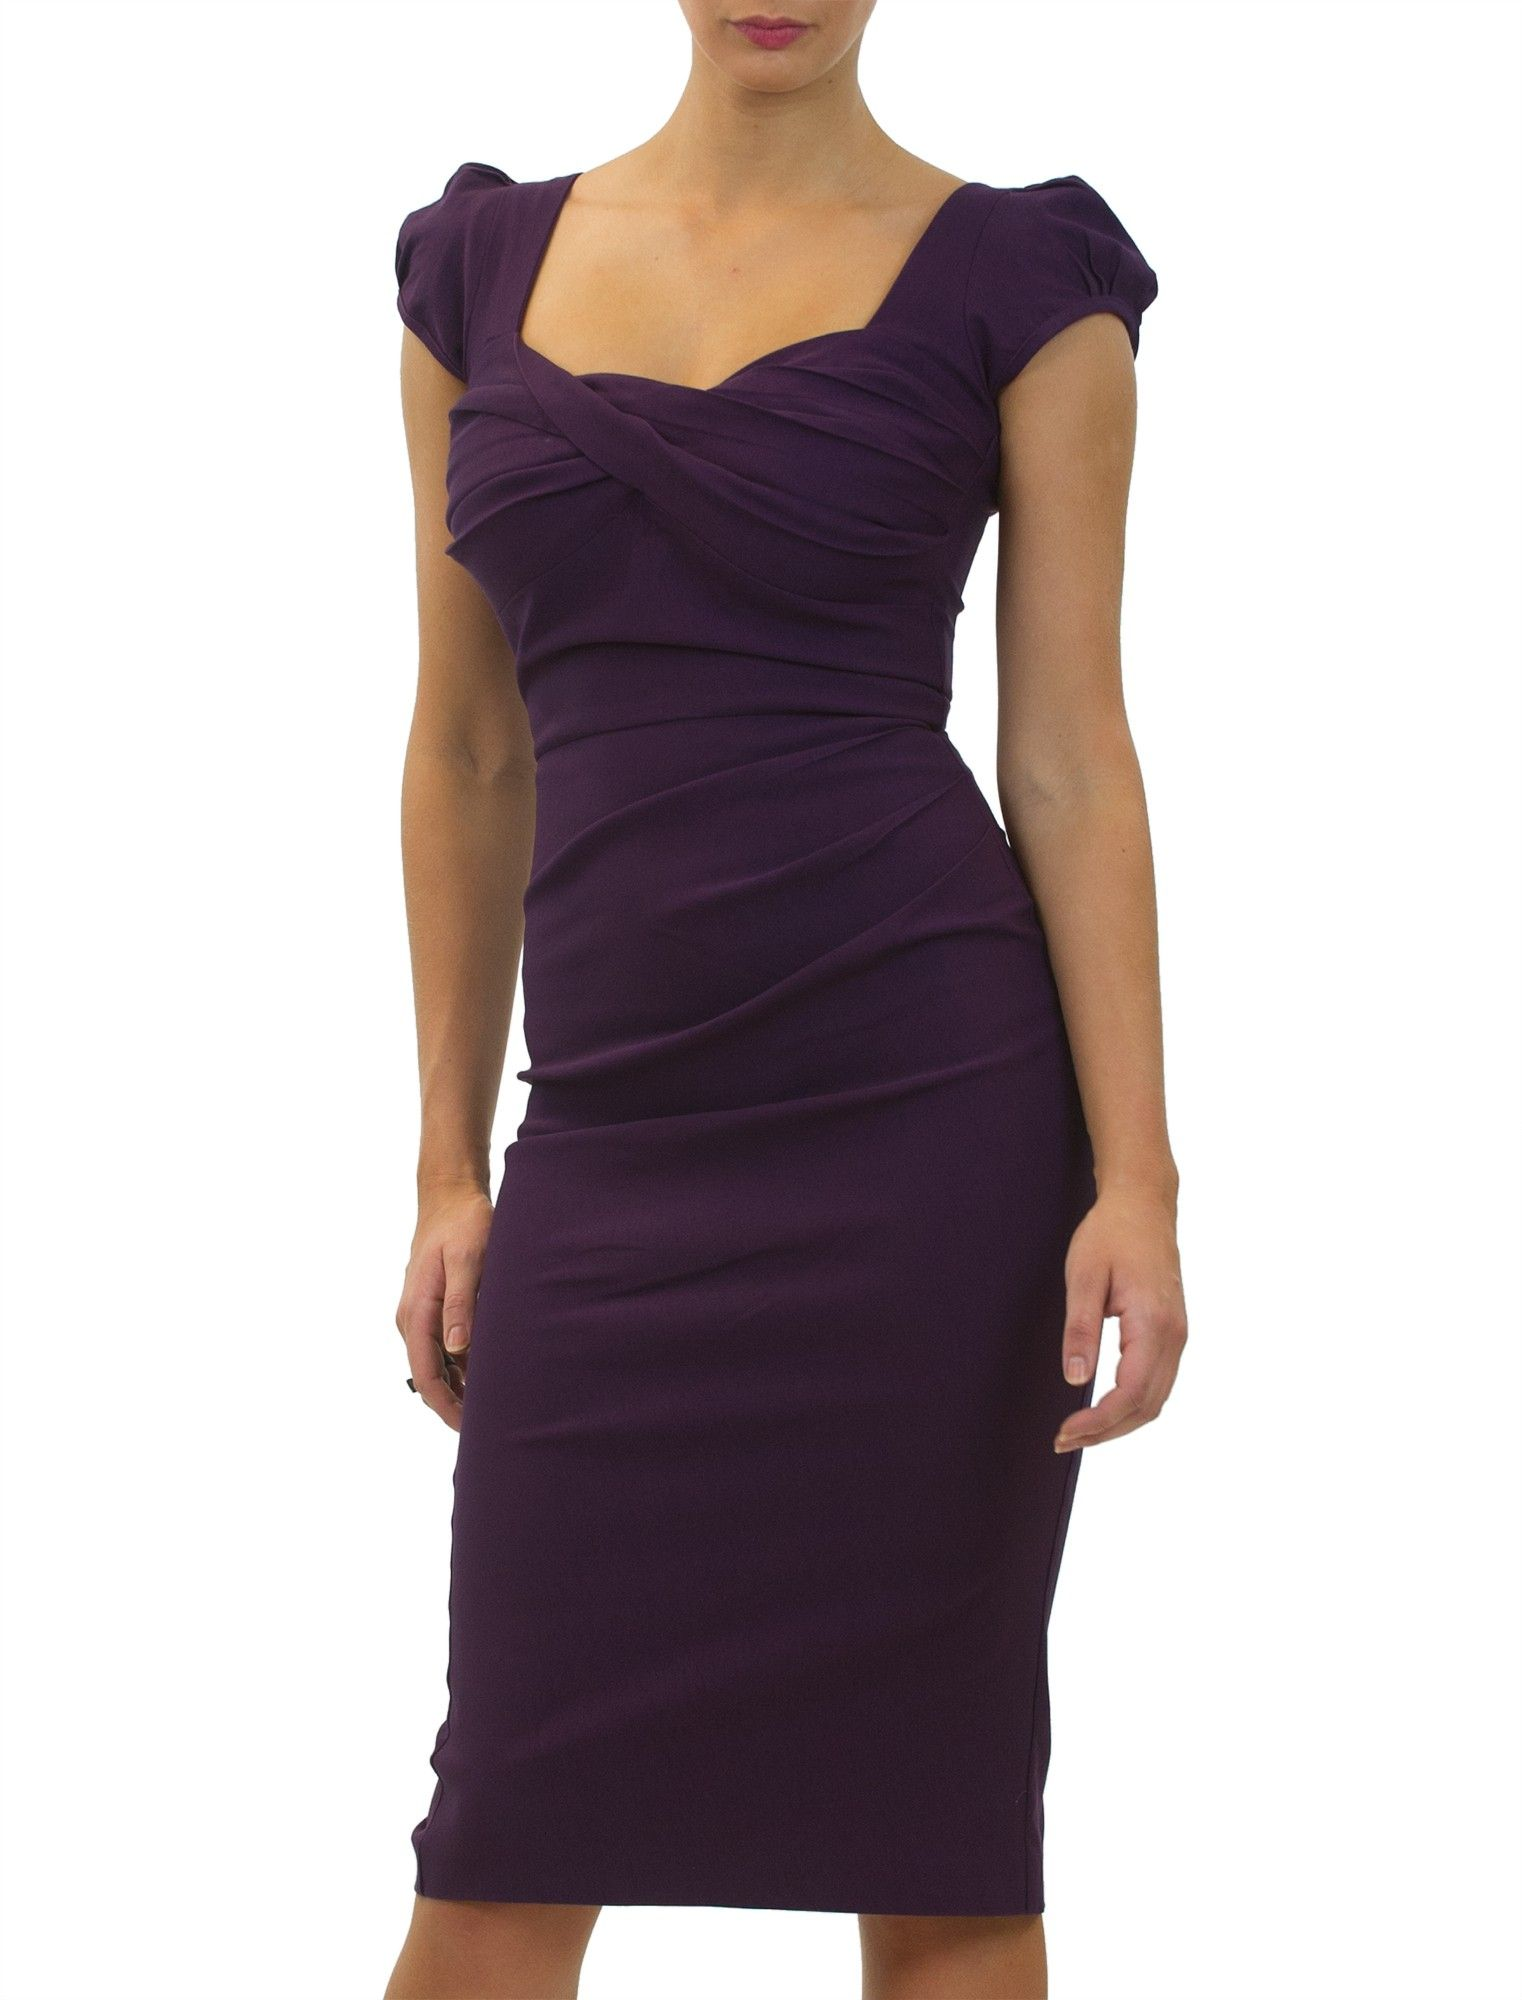 <p>The Nigella Dress draws on the vintage charm and feminine glamour of old Hollywood. This sexy, deep purple bombshell of a dress hugs your curves, flattering ample bosoms without revealing too much cleavage, and is guaranteed to draw compliments. Named after celebrity fan, Nigella Lawson, who famously wore this dress to rapturous acclaim, this expertly crafted retro 1950's inspired style is the perfect party dress for big busted women up to GG cups who want to show off their curves this…